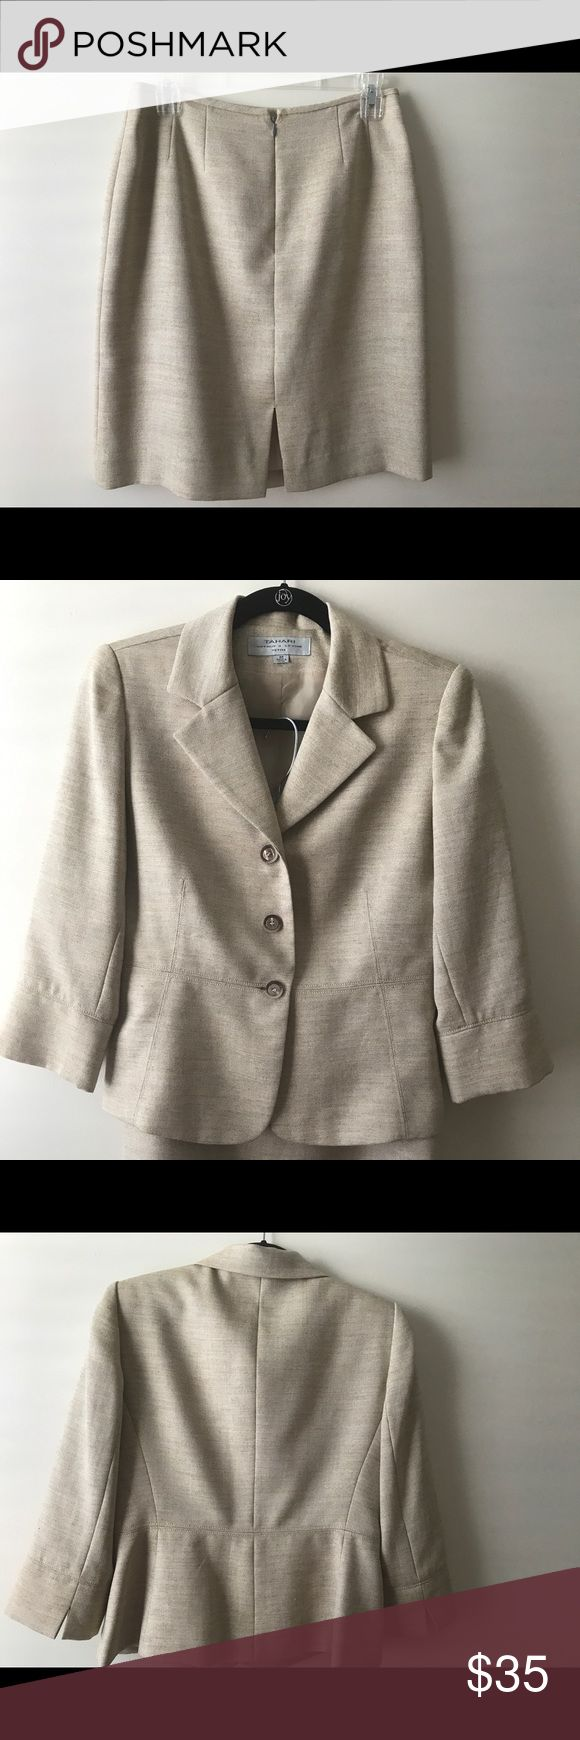 Tahari two piece suit 6 petite Beautiful two piece Tahari cream tweed fully lined suit. Like new condition smoke free size 6 petite. Tahari Other